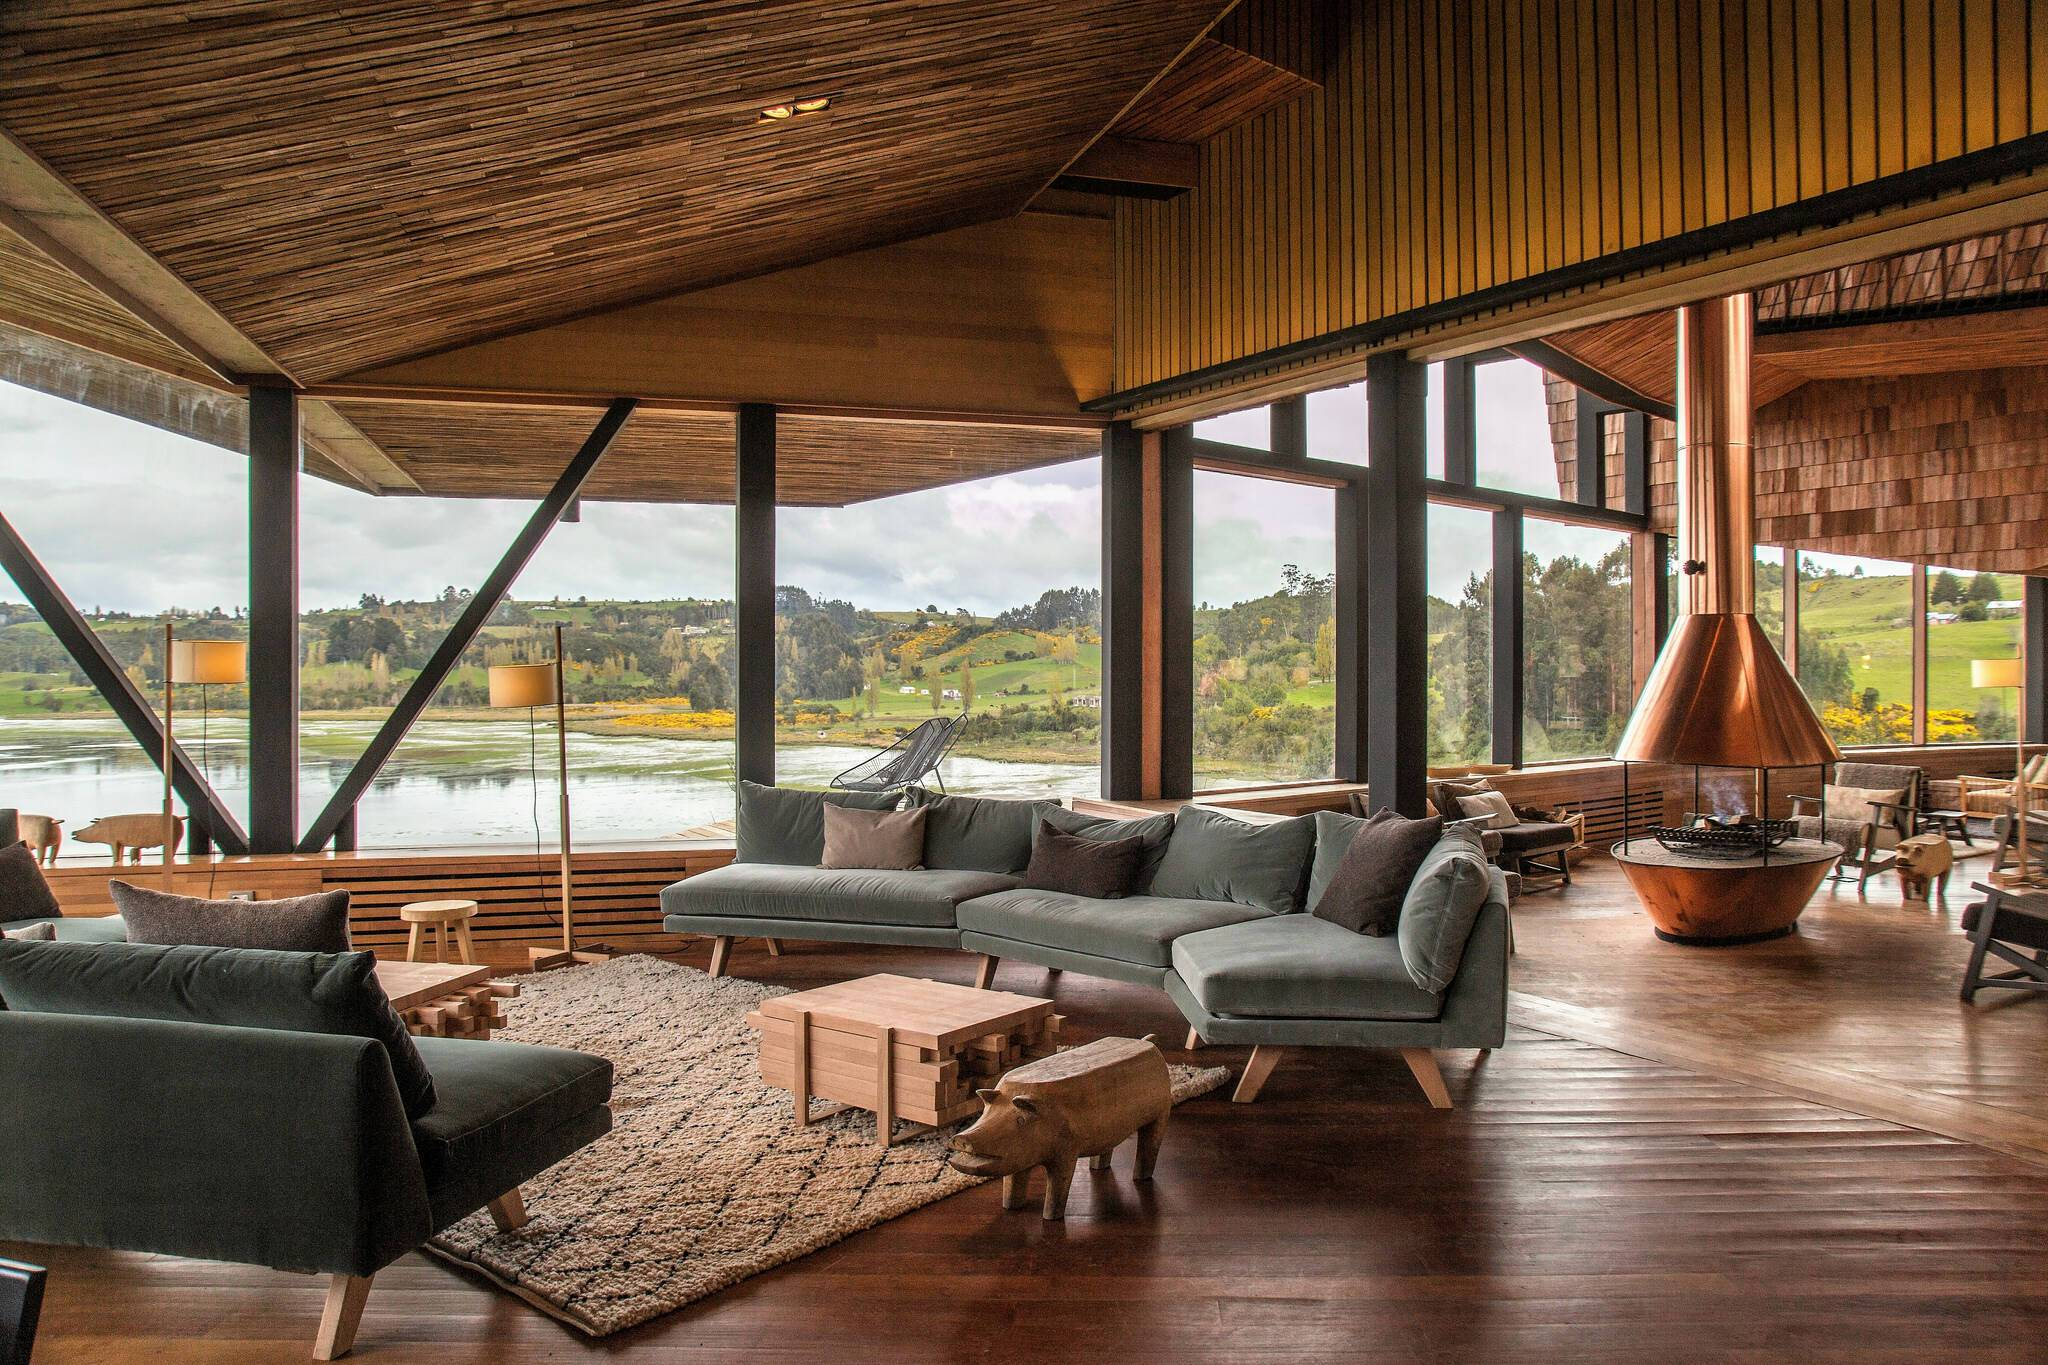 Tierra Chiloe Chili living room